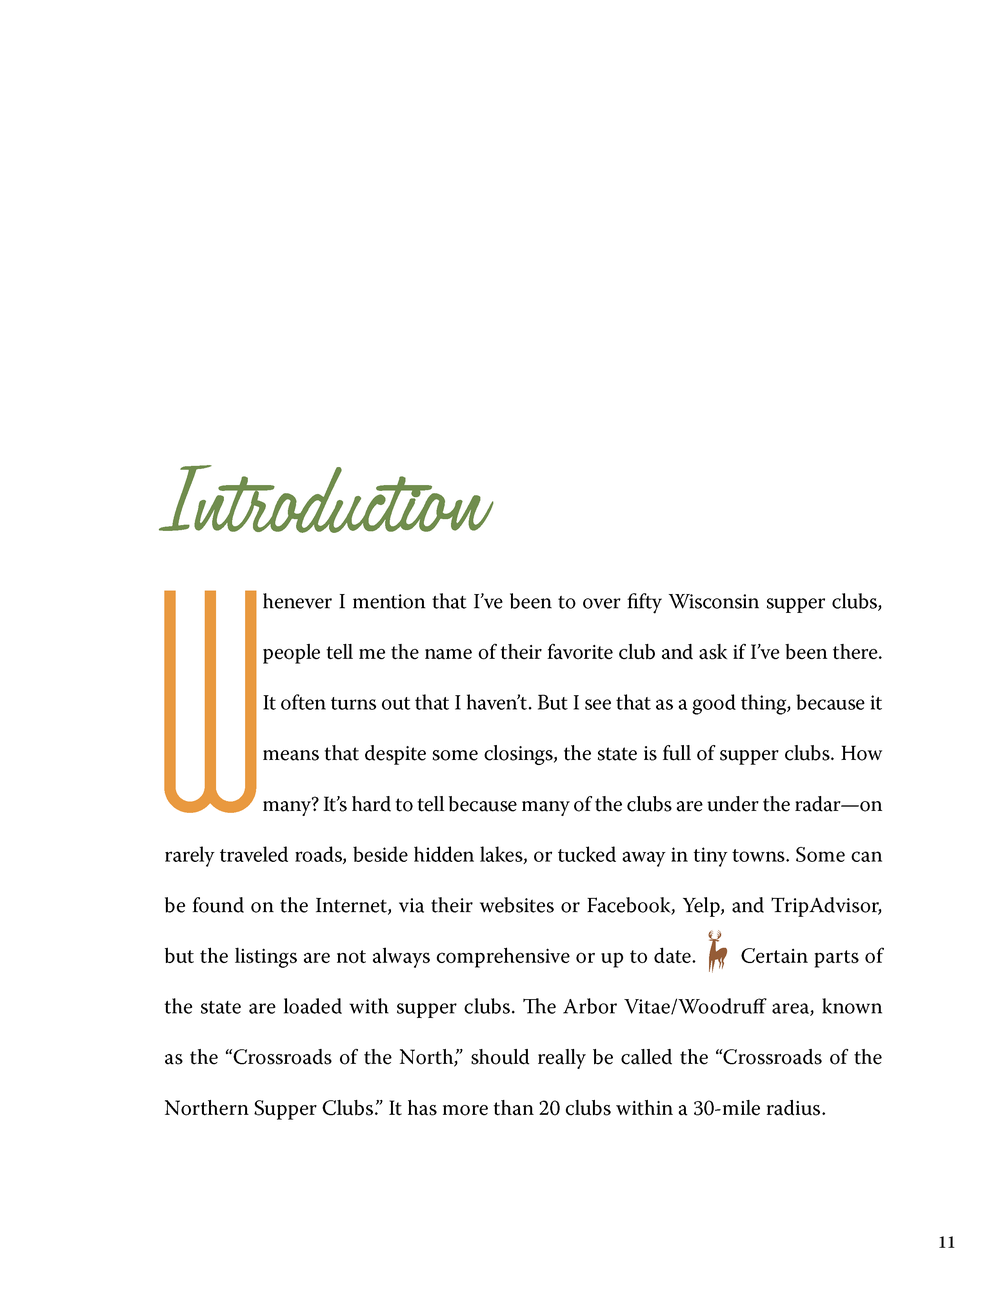 Wisconsin Supper Clubs_Page_06.png